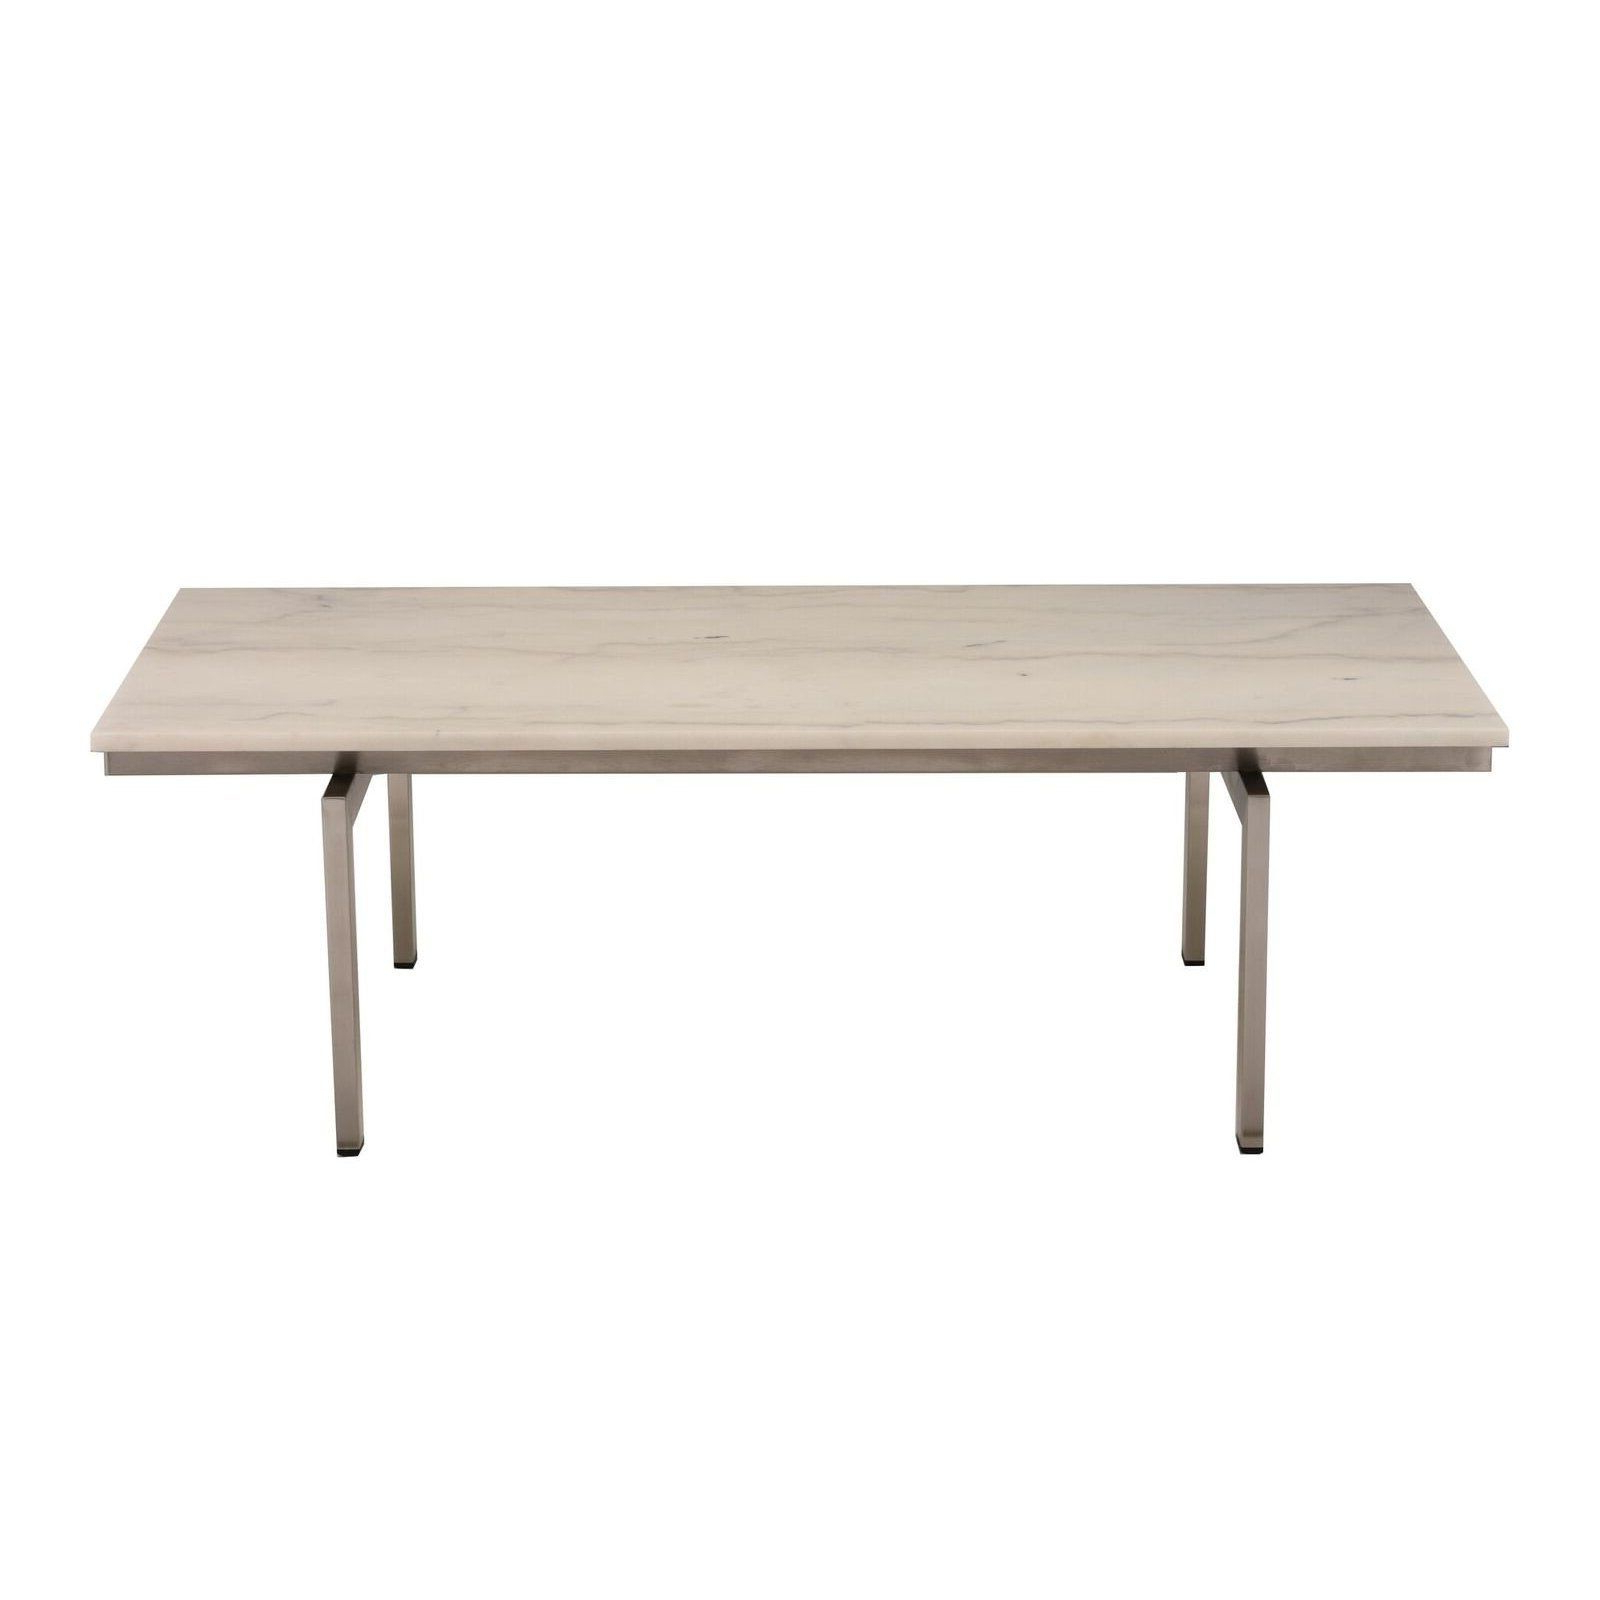 Widely Used Slab Small Marble Coffee Table With Antiqued Silver Base For Large Slab Marble Coffee Tables With Antiqued Silver Base (View 11 of 20)